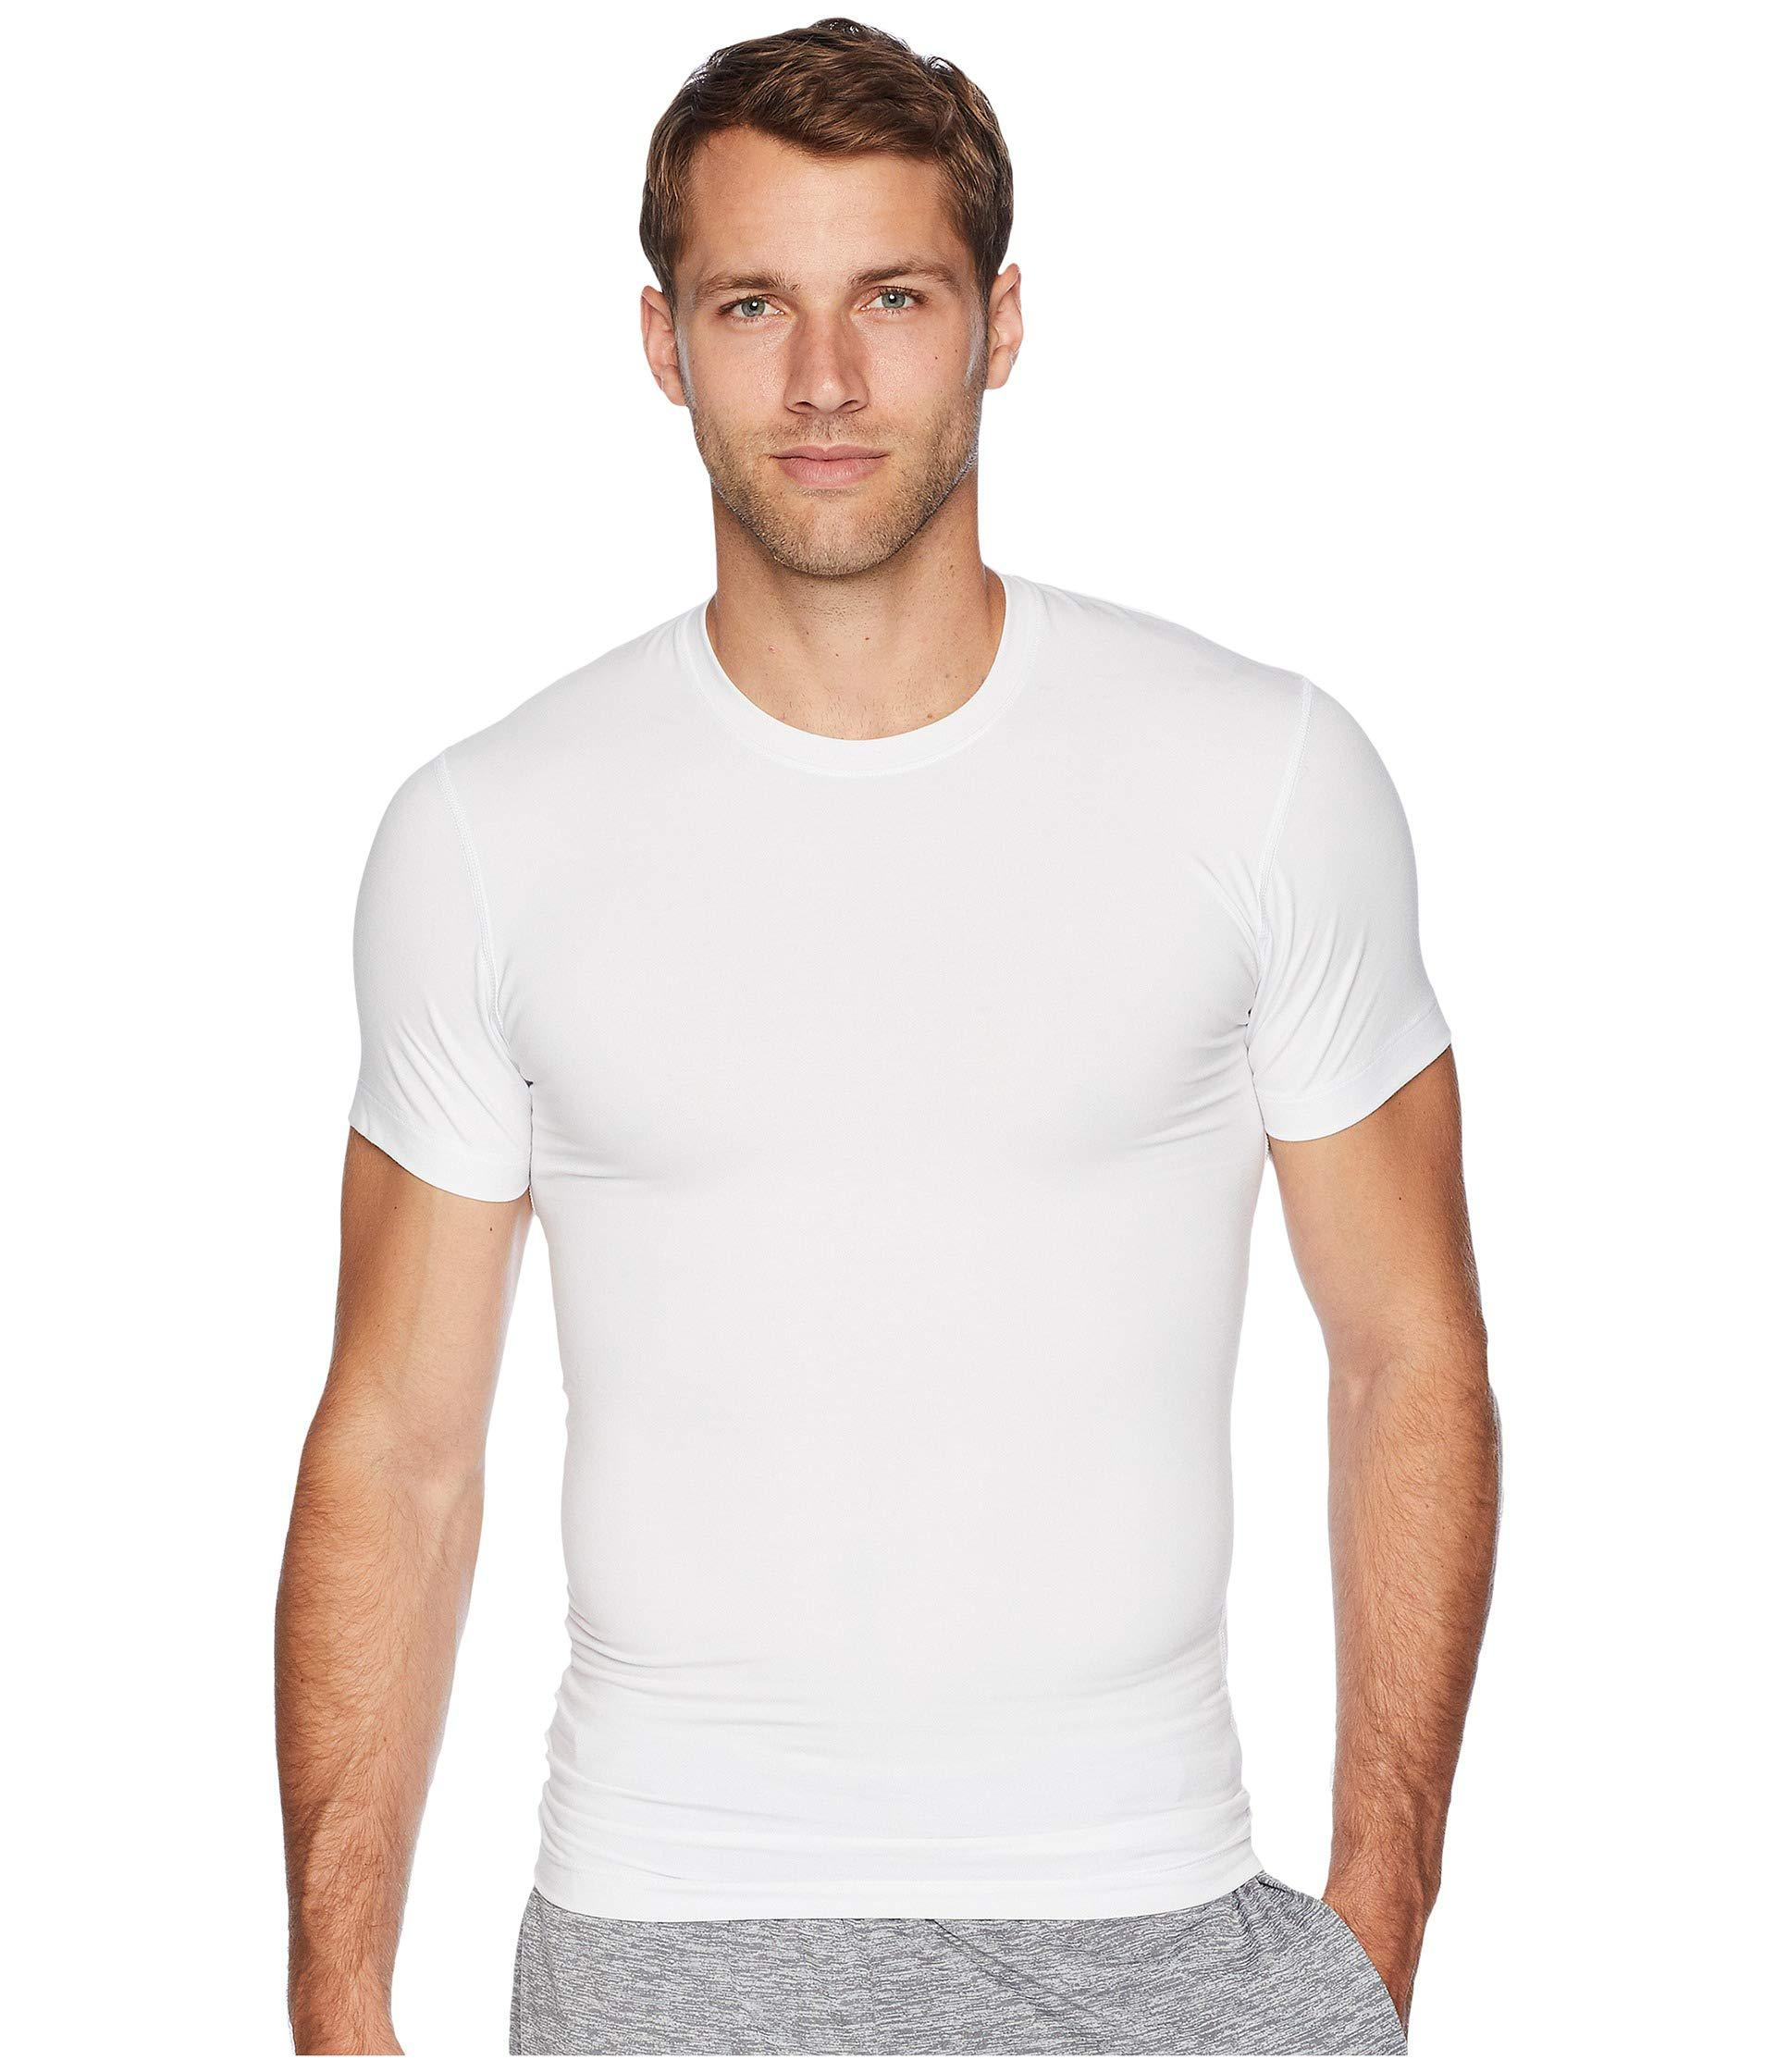 0e7a06f3cdd472 Lyst - 2xist 2(x)ist Form Crew Neck Tee (white) Men s T Shirt in ...